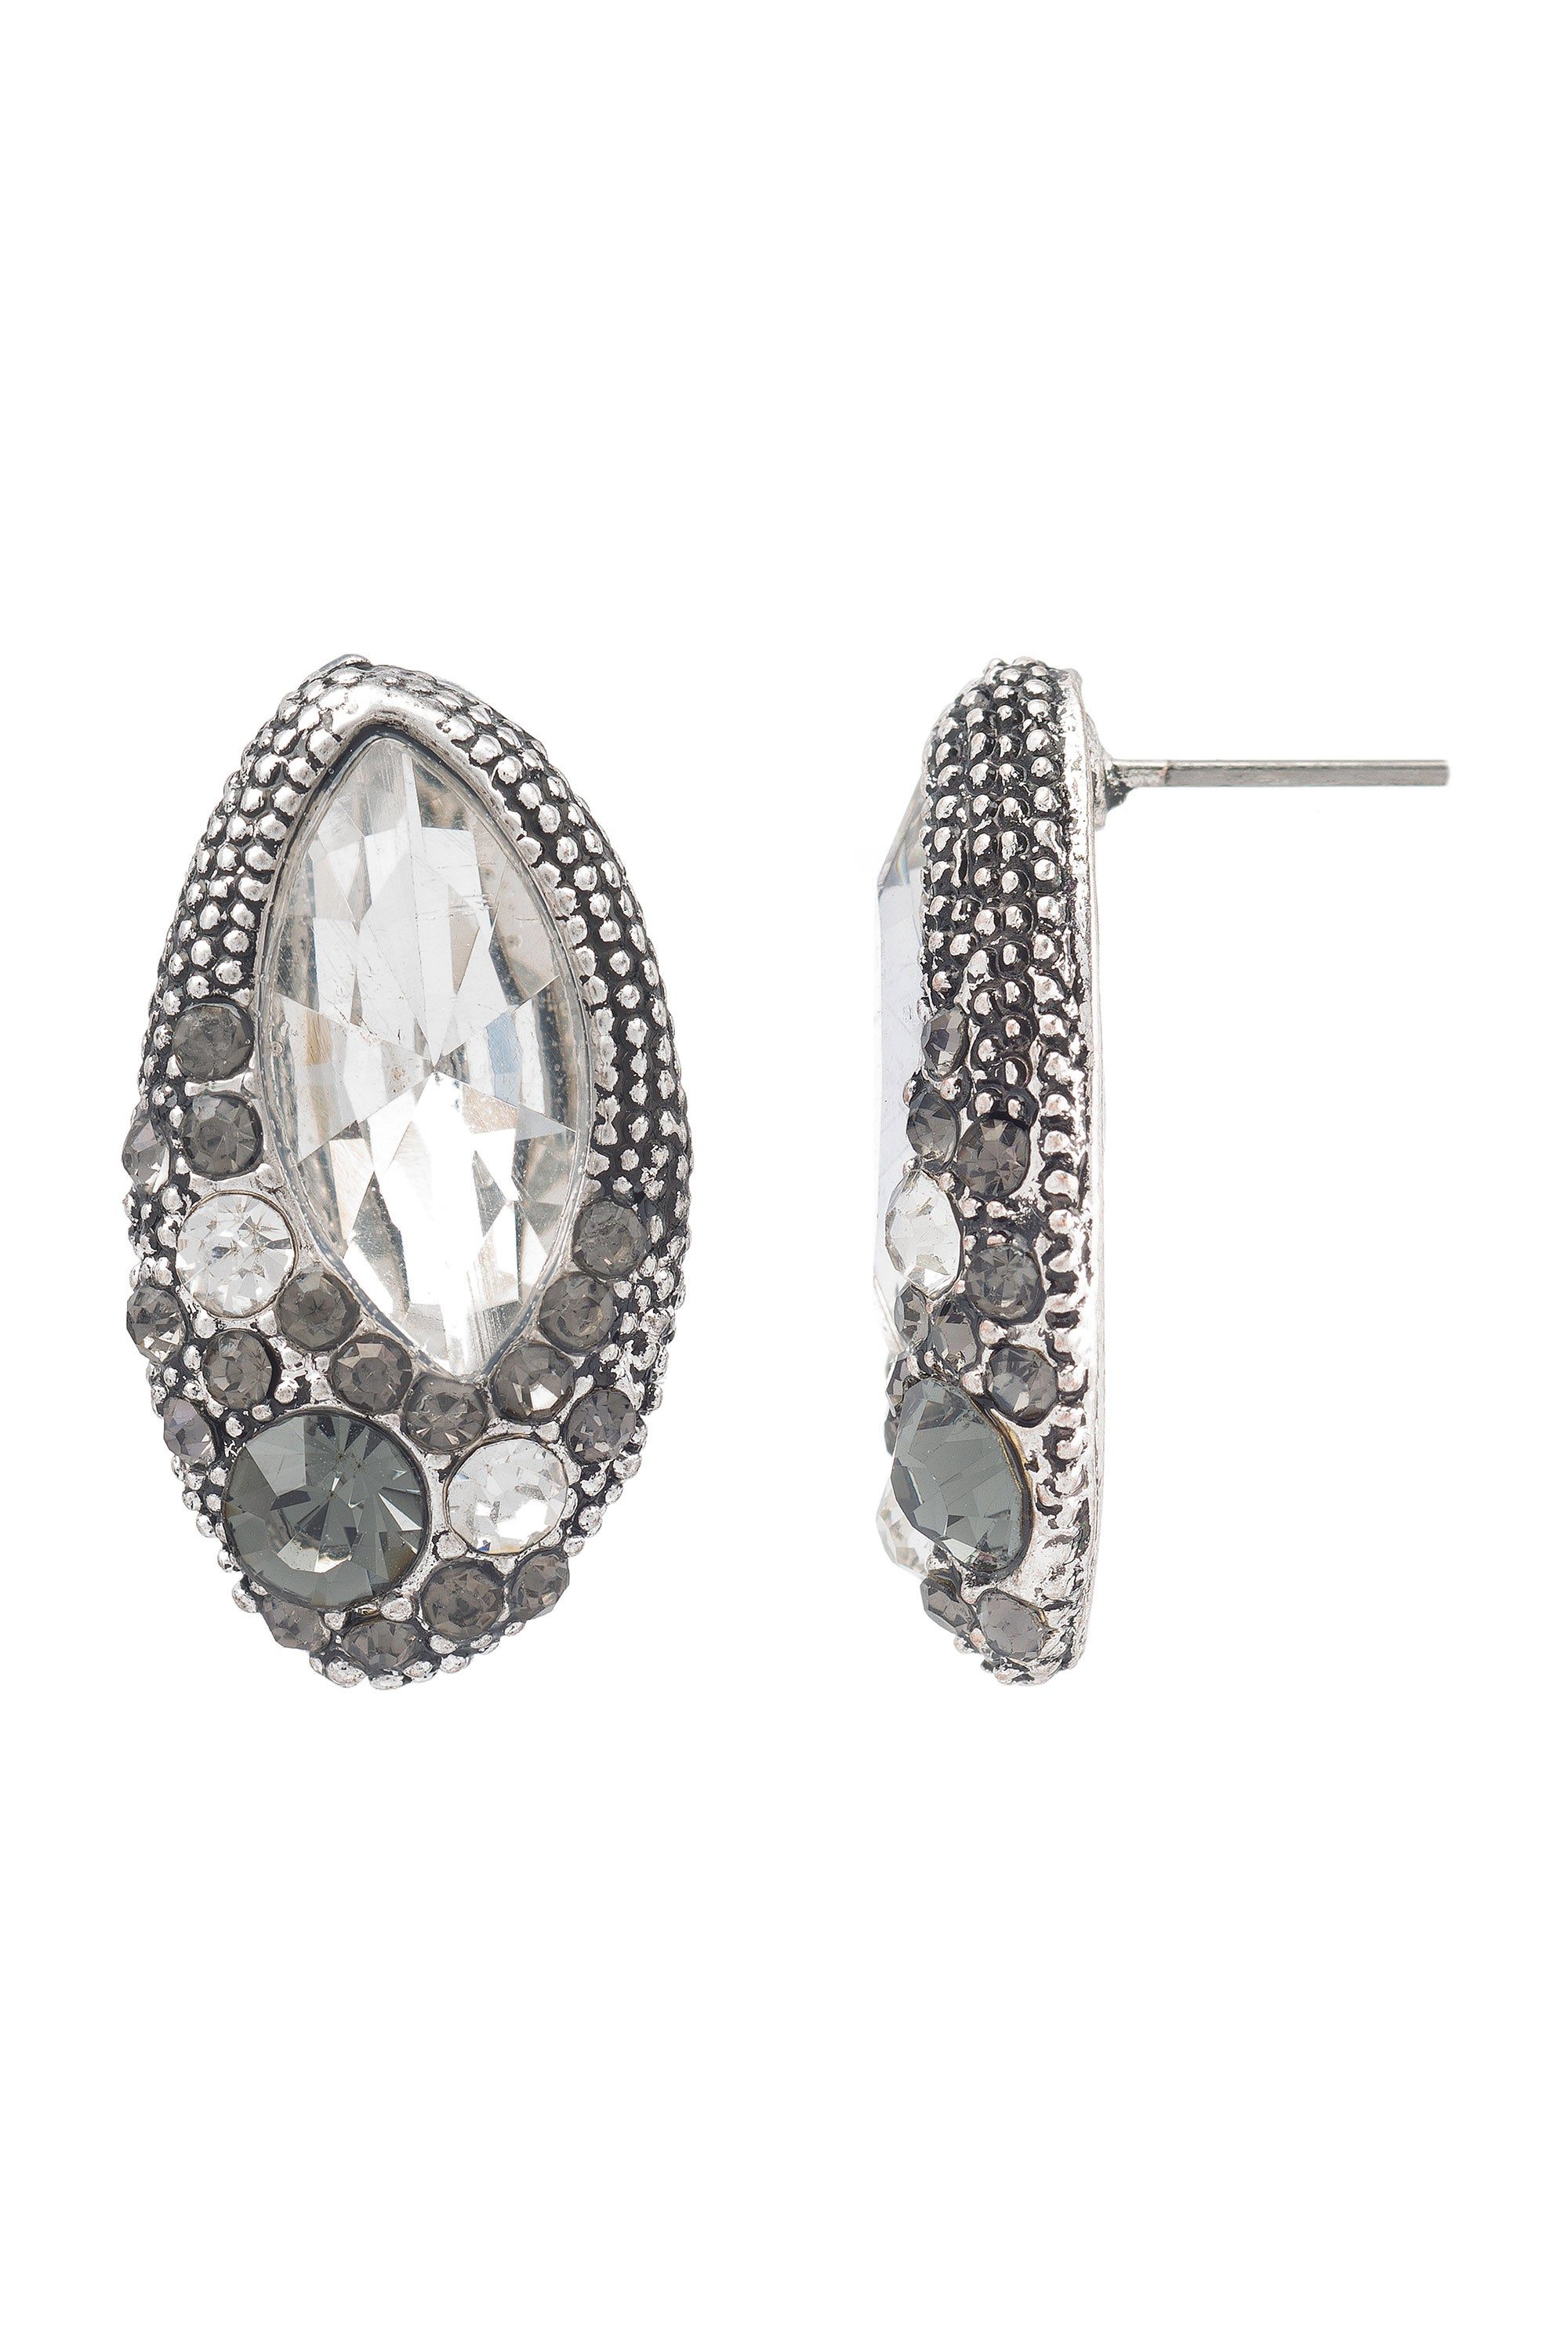 Type 2 Regal Rhinestone Earrings